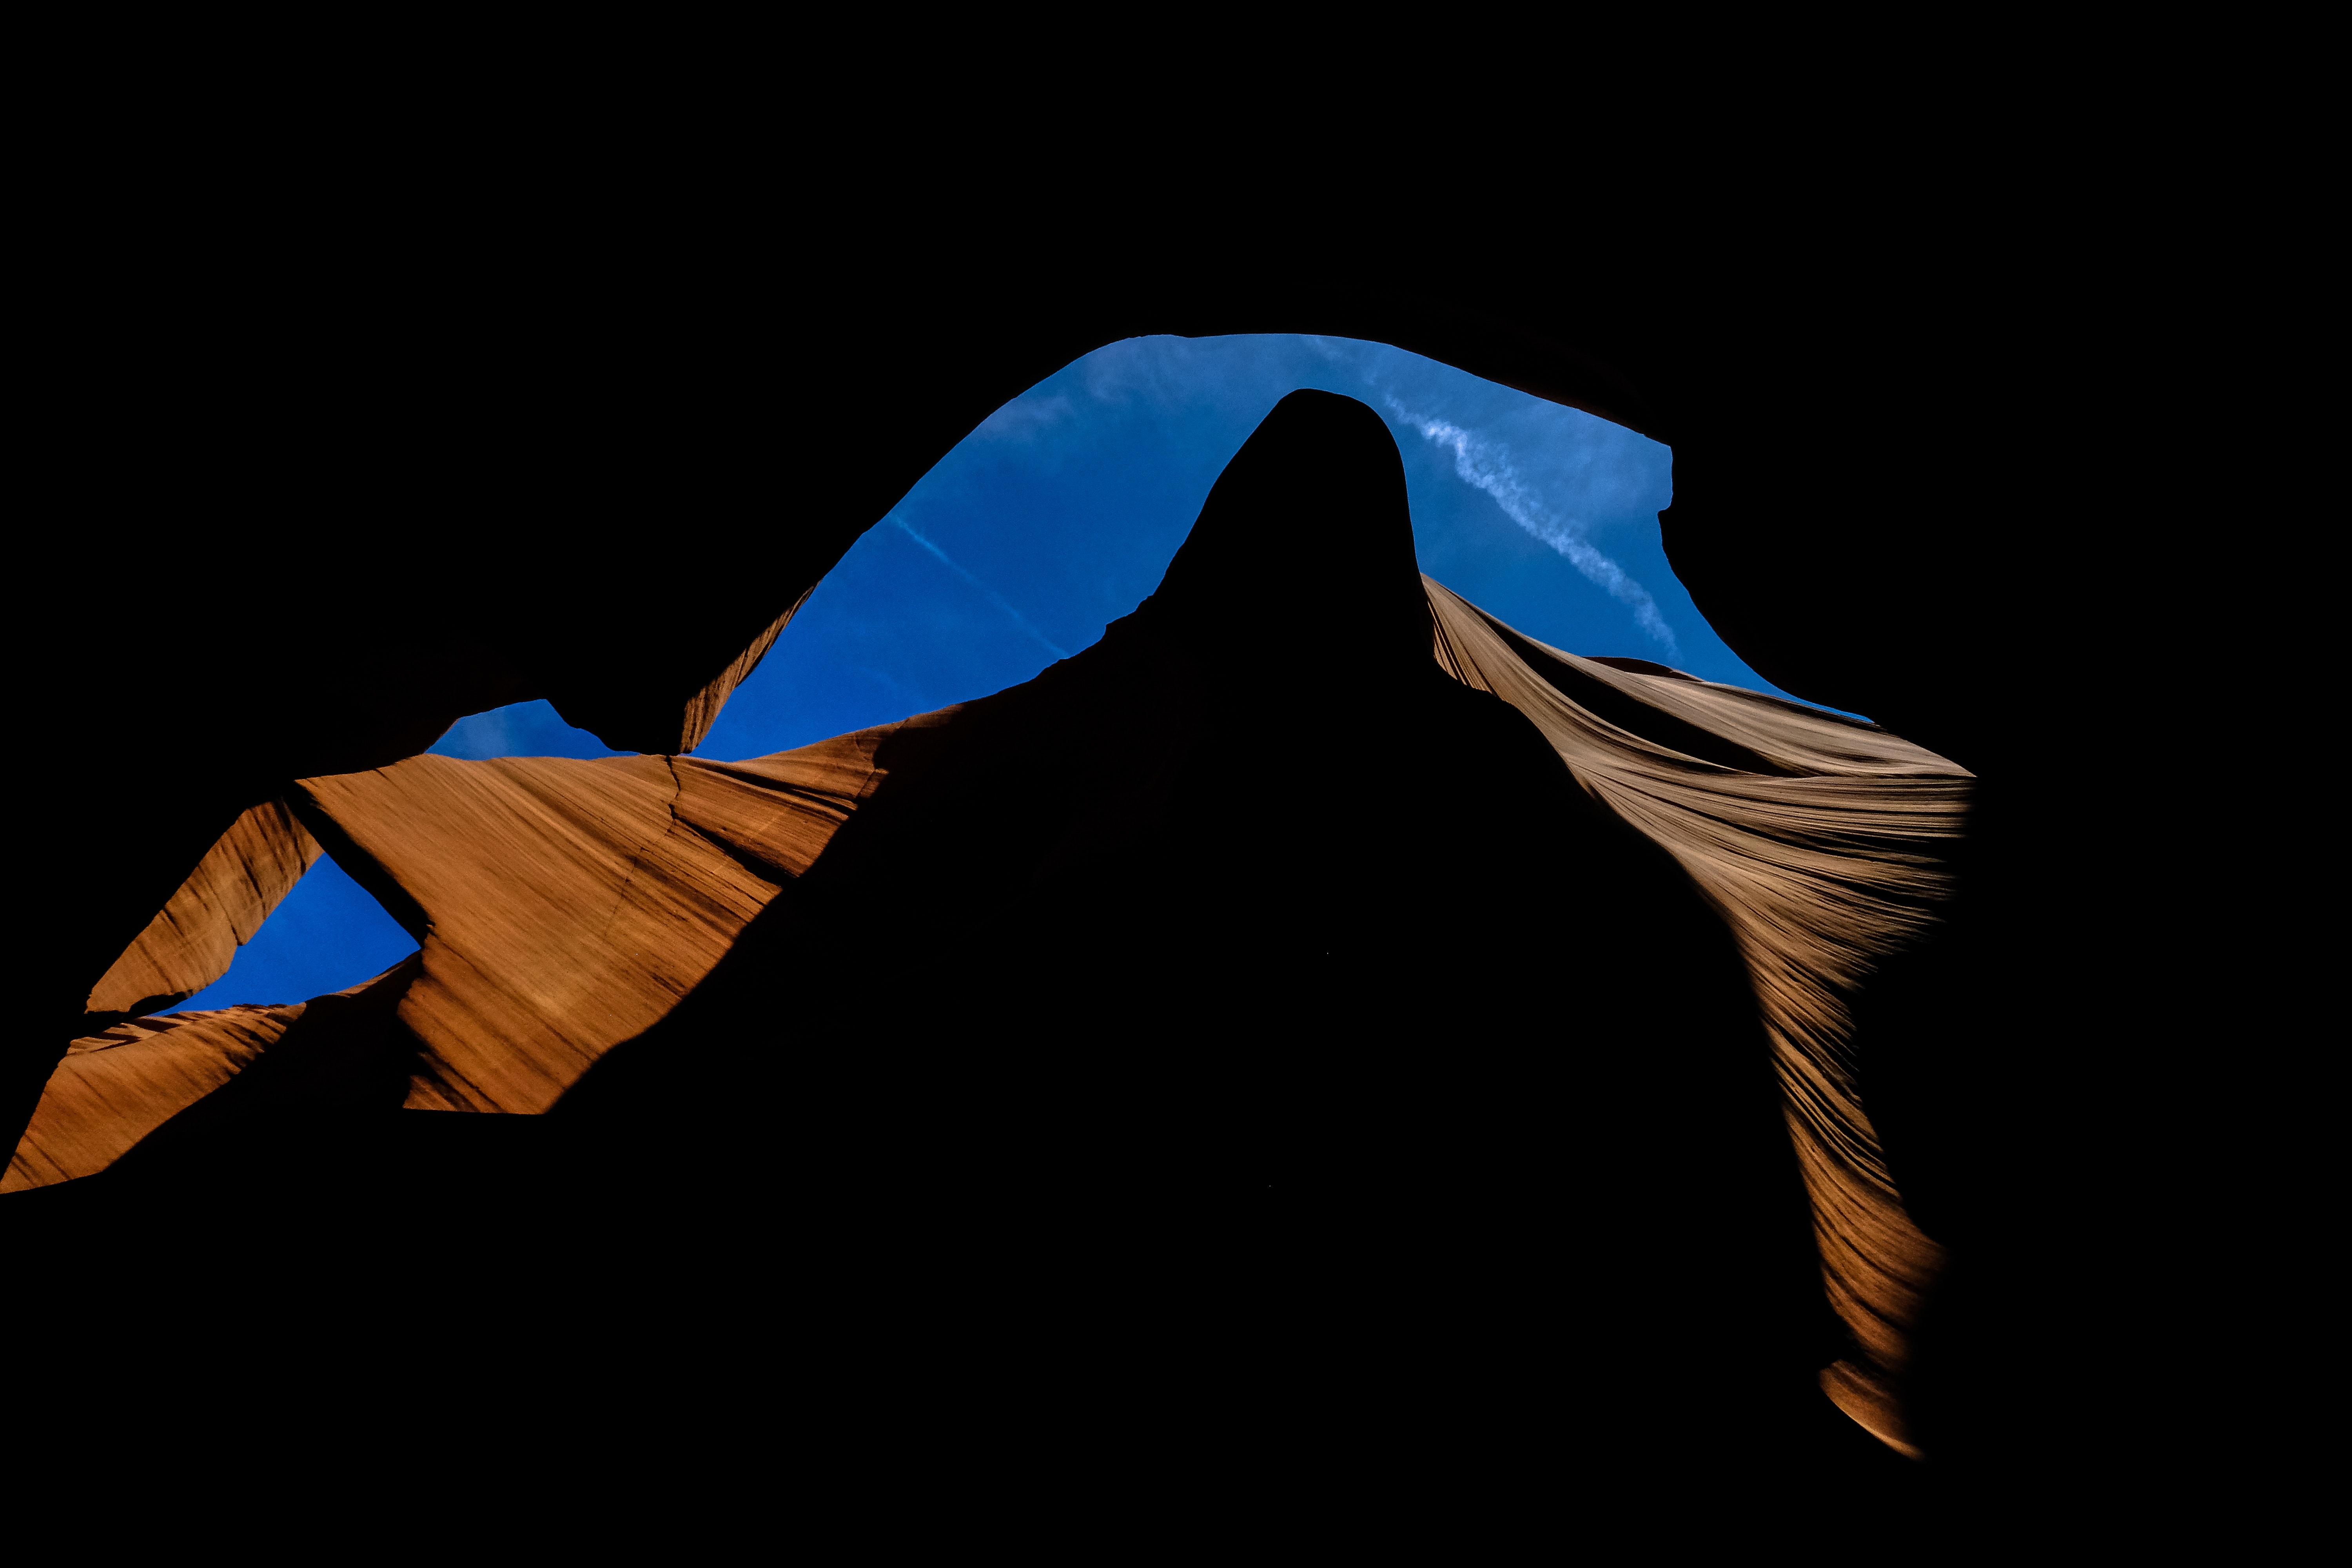 blue, white, and brown textile